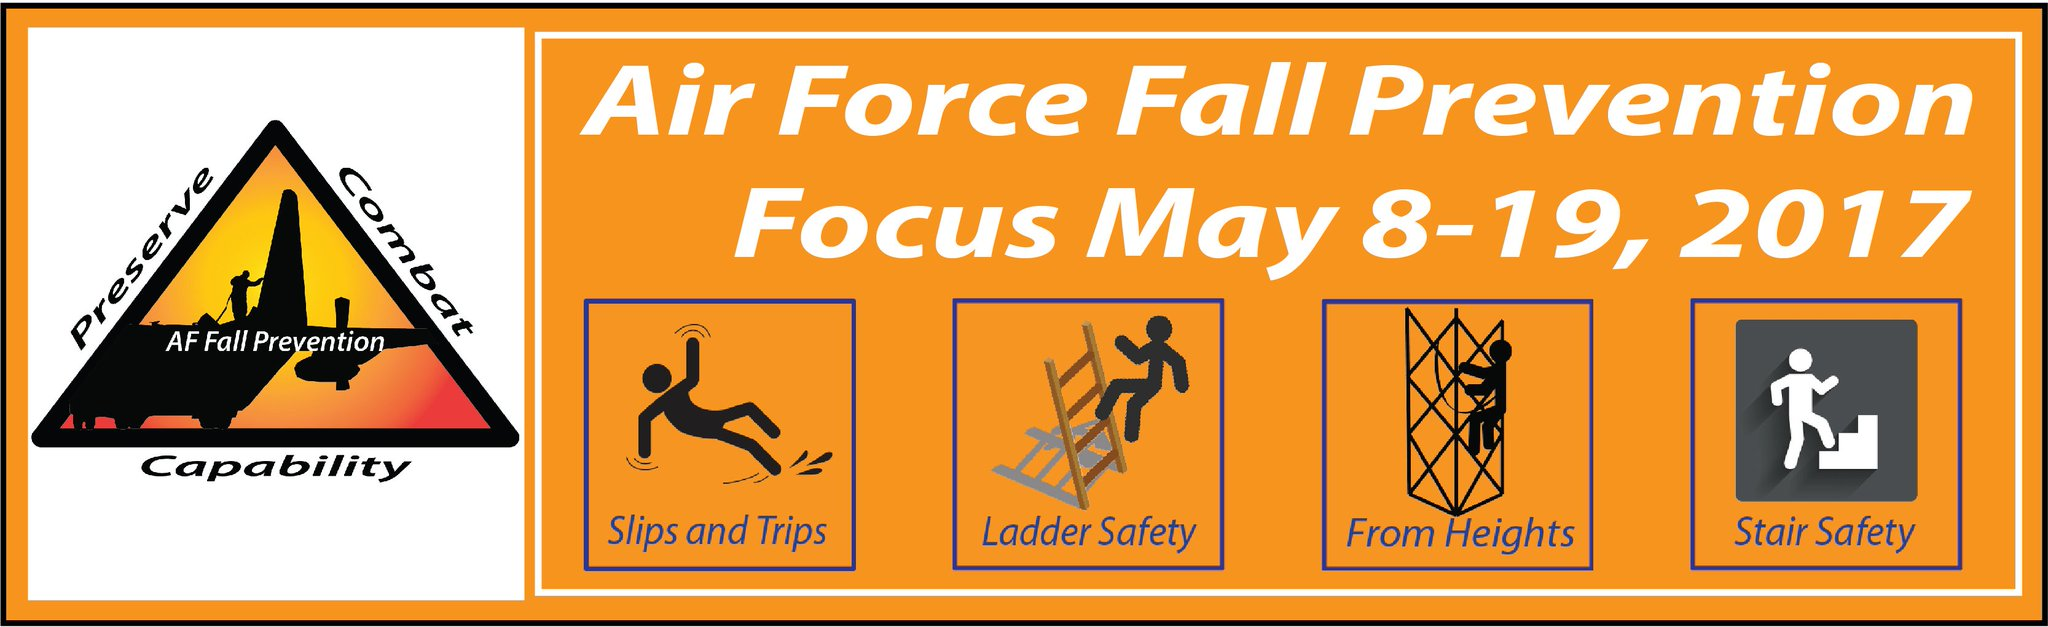 Prevent fall mishaps! #StandDown4Safety!  https://t.co/R3Pa9AjJAU https://t.co/T3sDXsyZig